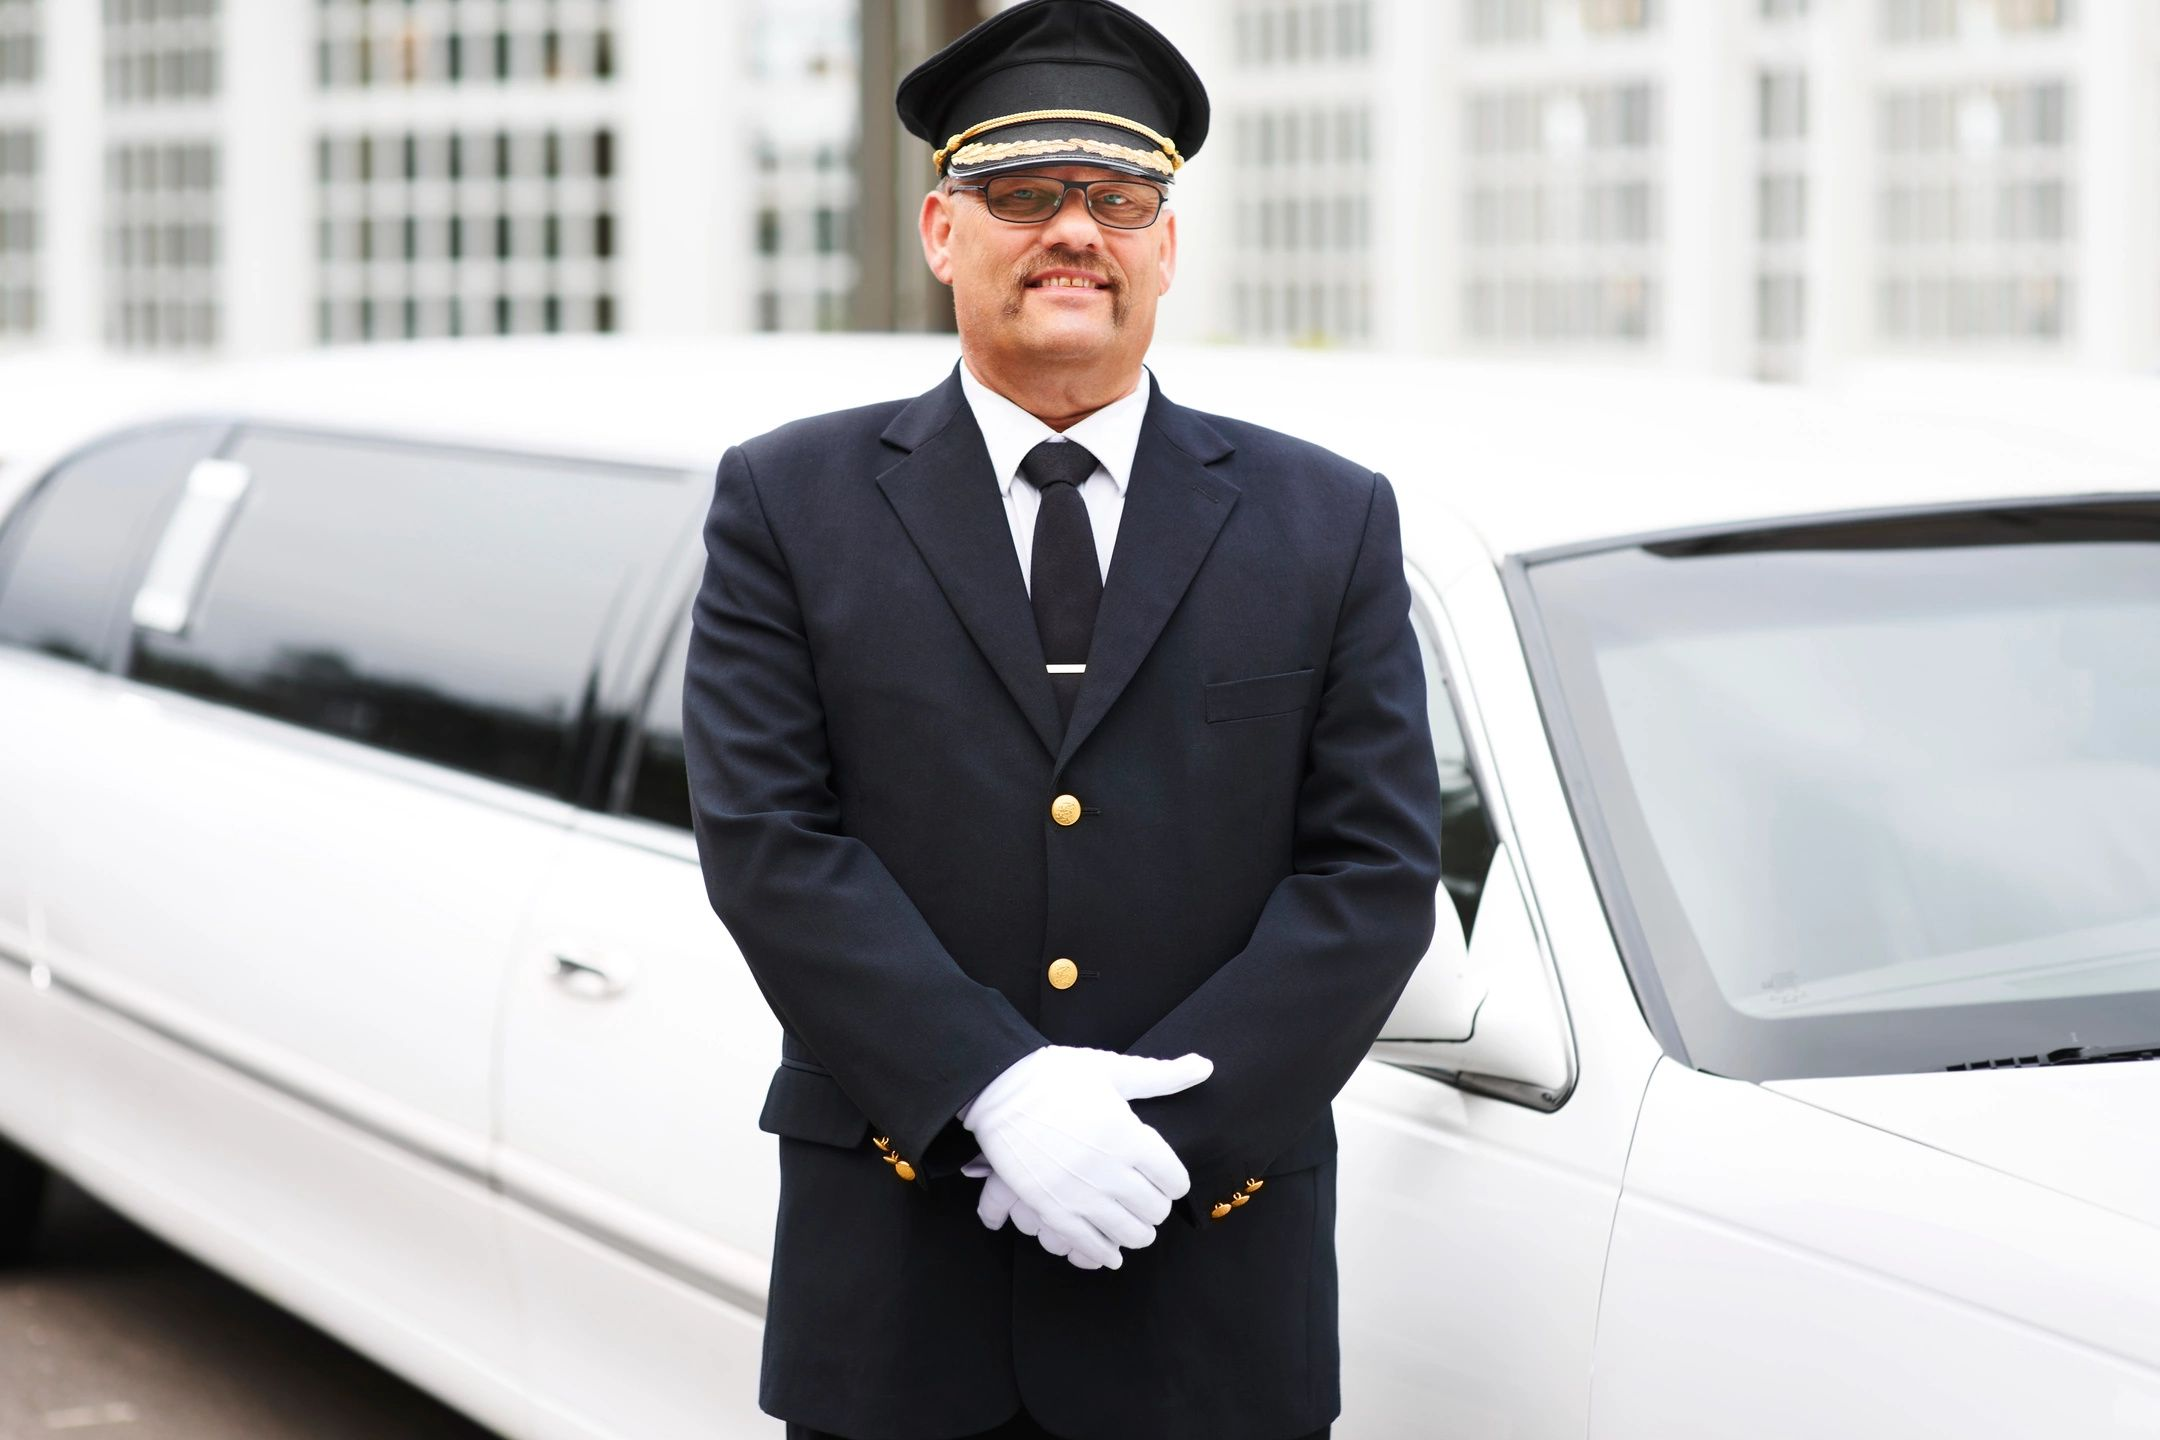 Somerset limousine service